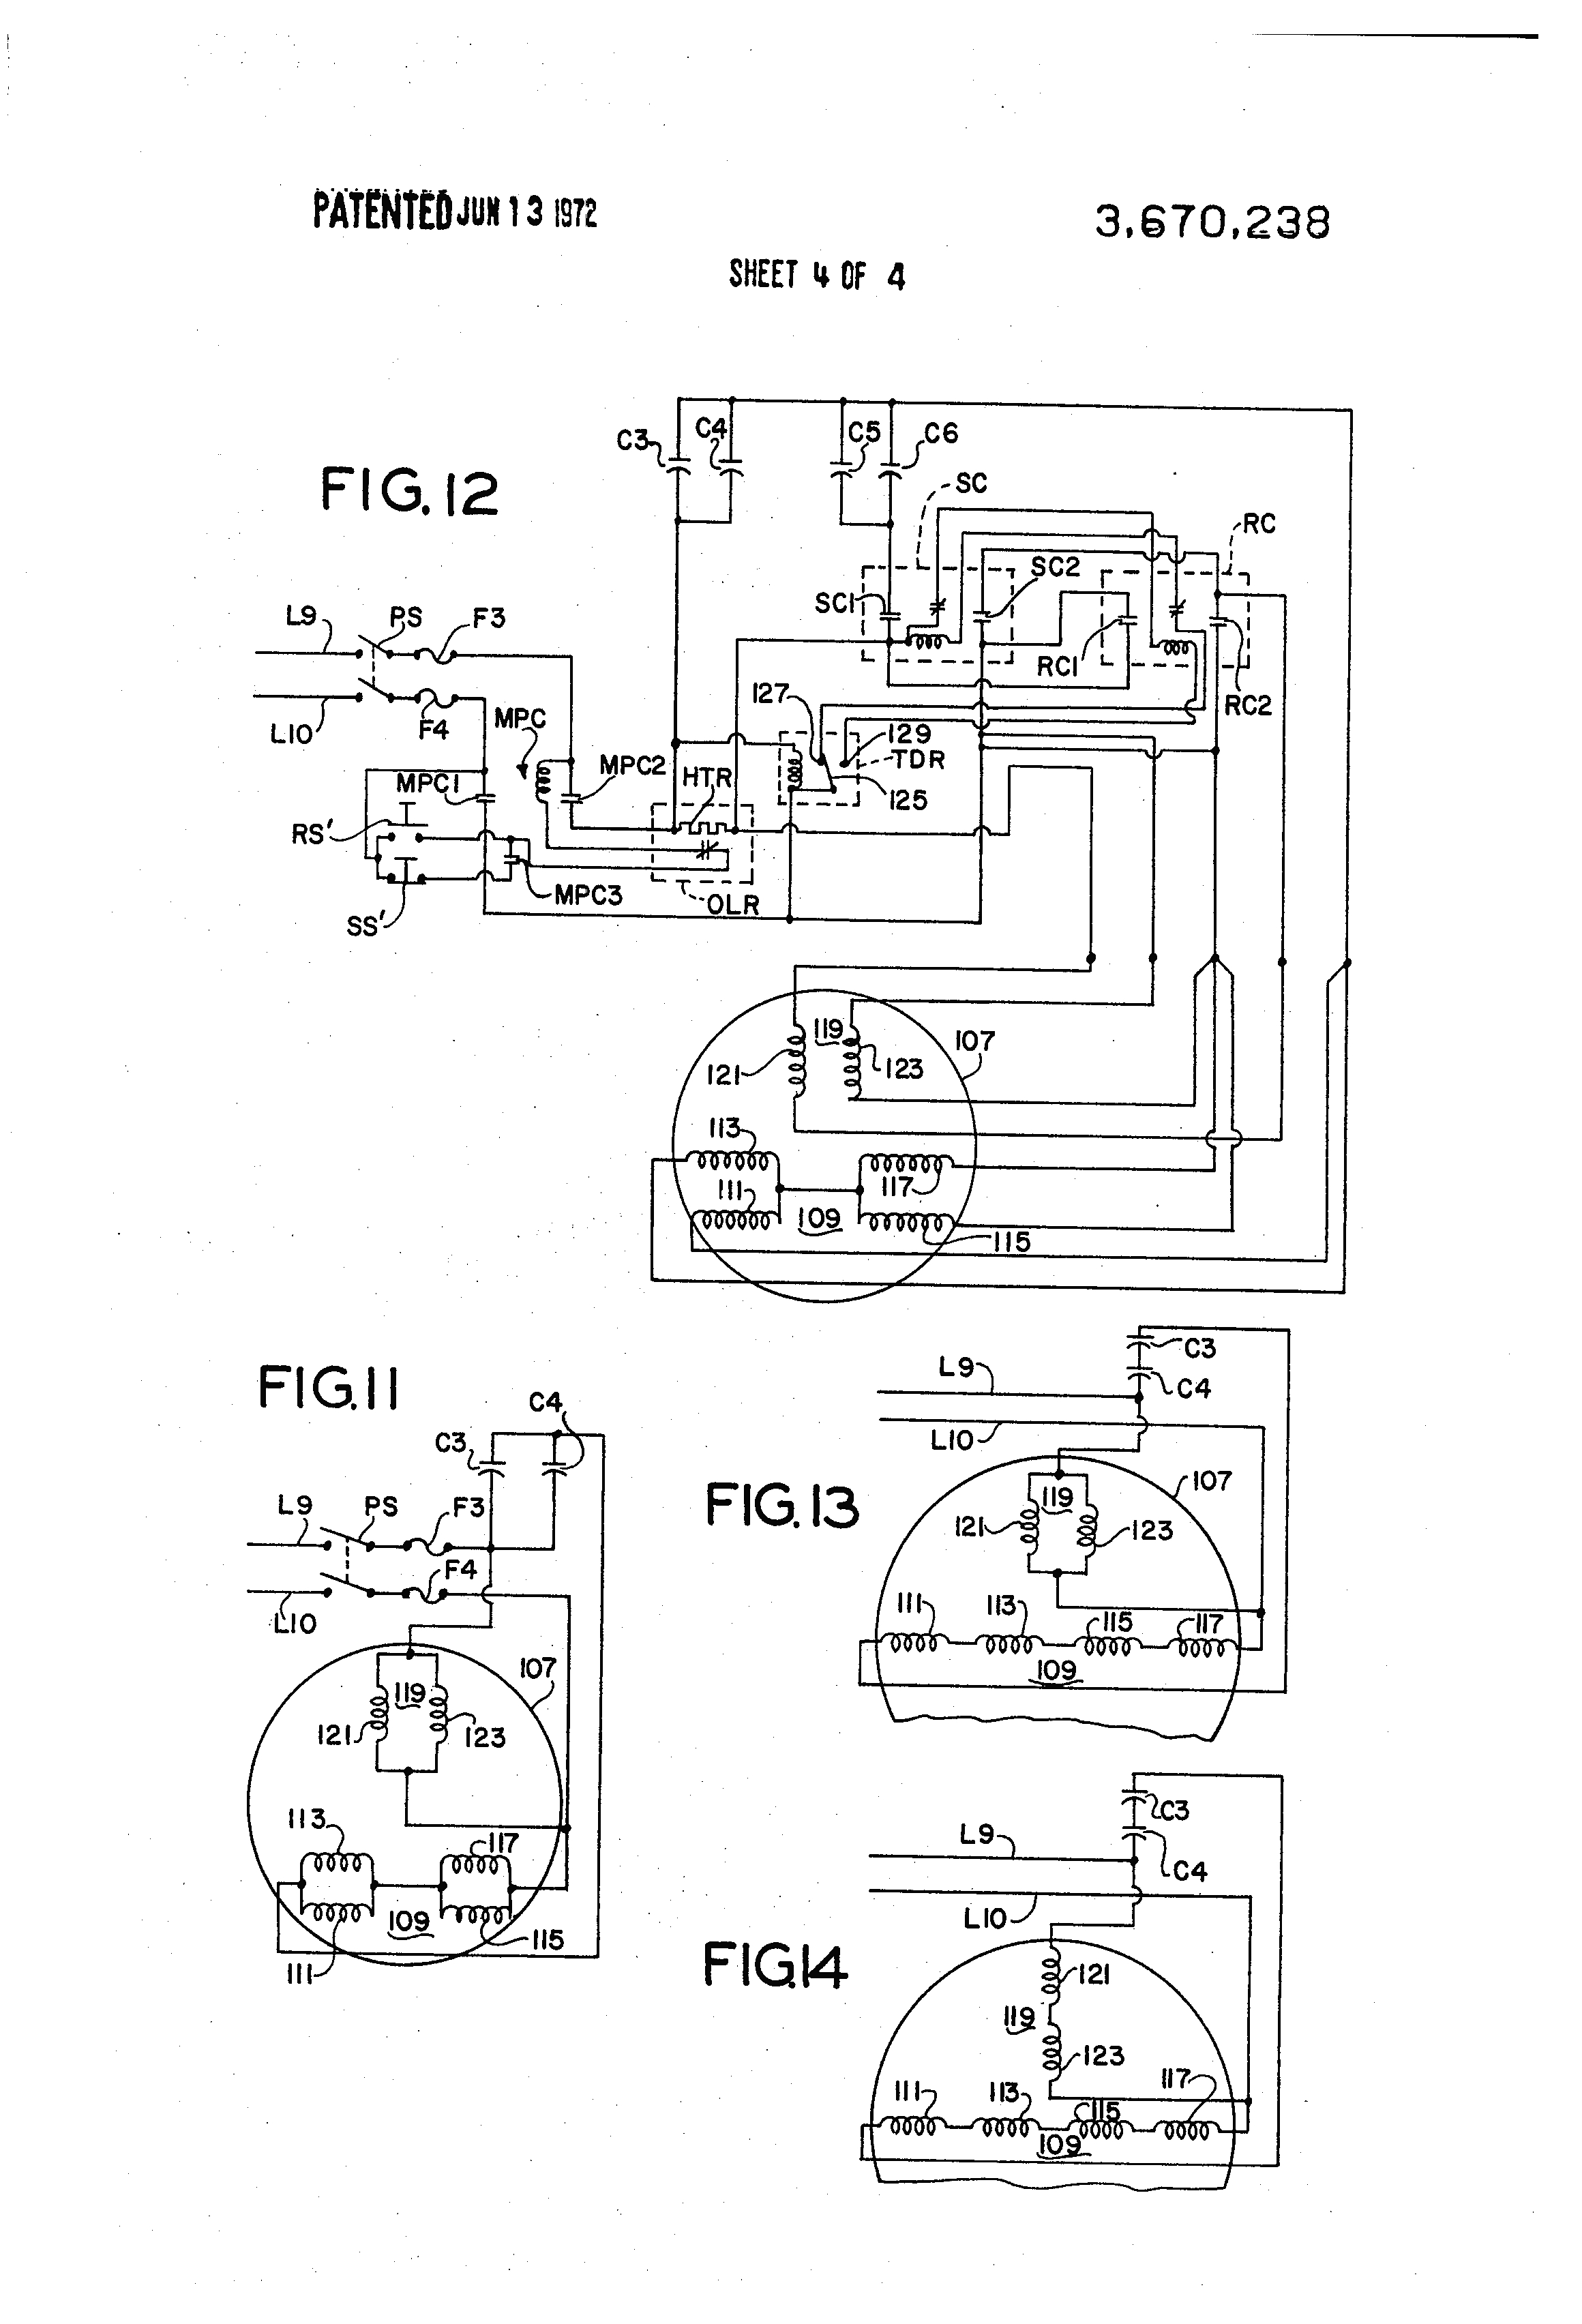 ronk phase converter wiring diagram Collection-Ronk Phase Converter Wiring Diagram 9 2-h